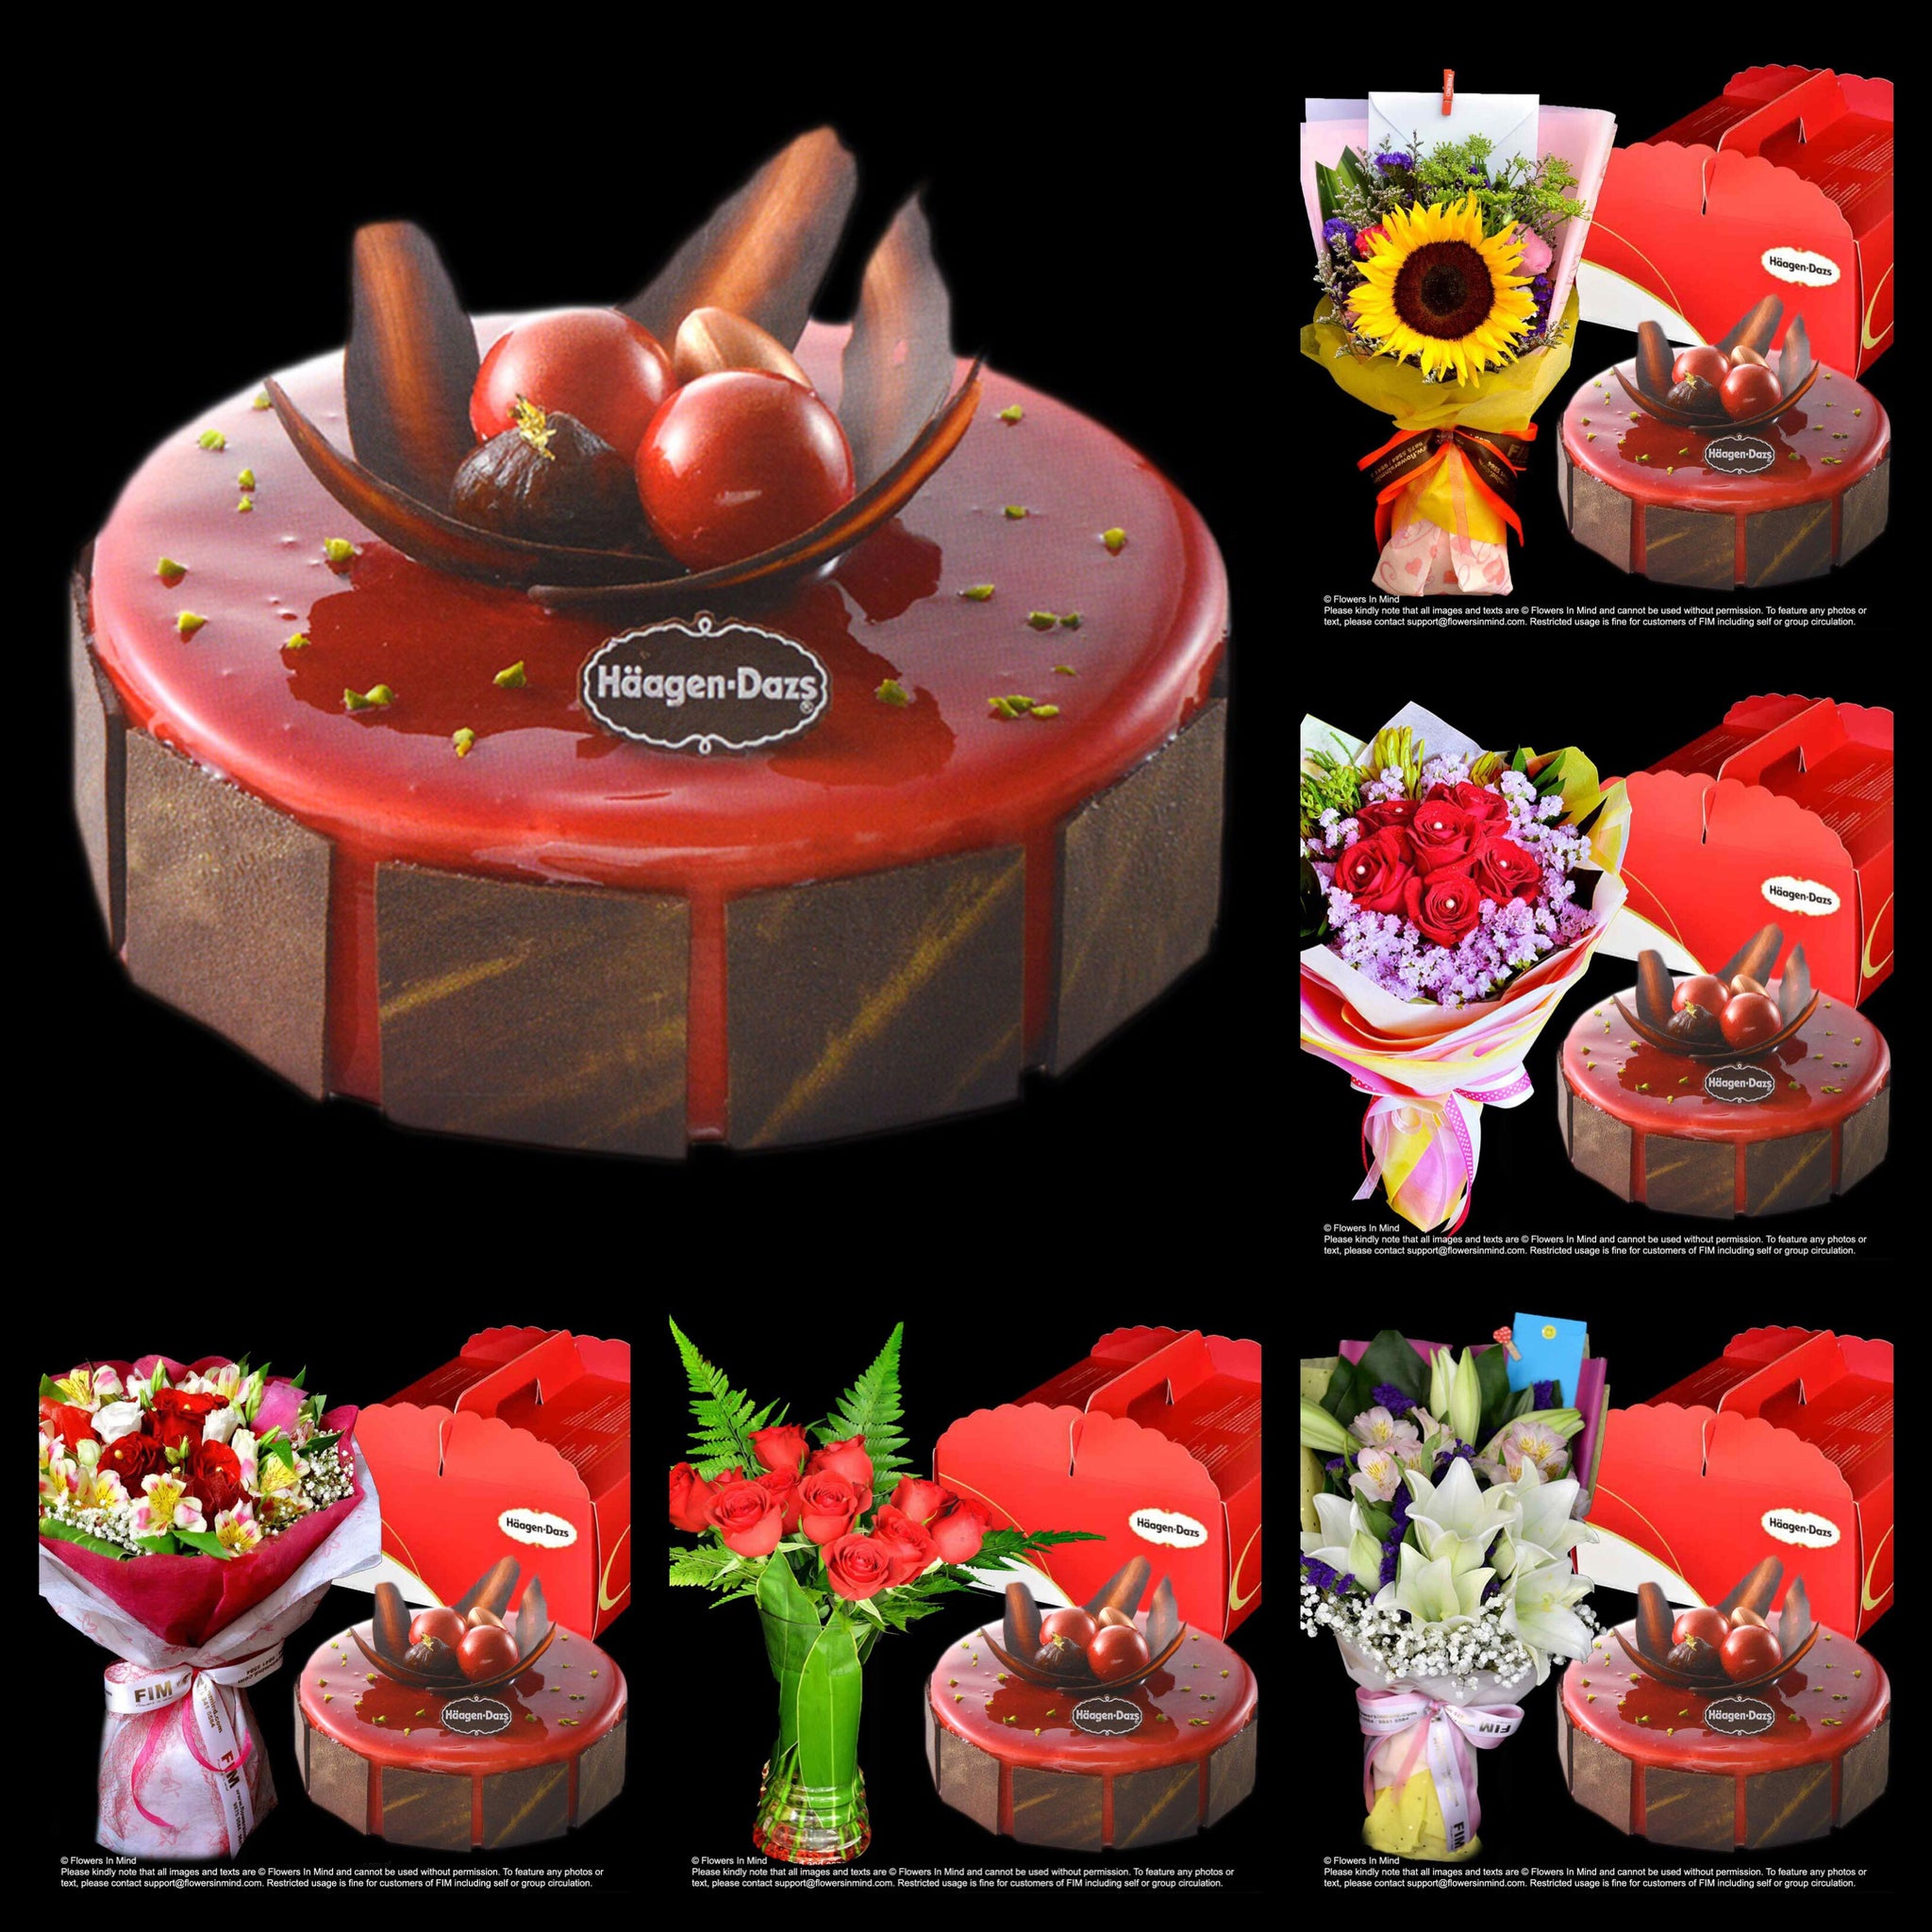 Cake and flowers delivery singapore cake service provider flowers with ice cream cakeslove moment from hagen dazs flowers in izmirmasajfo